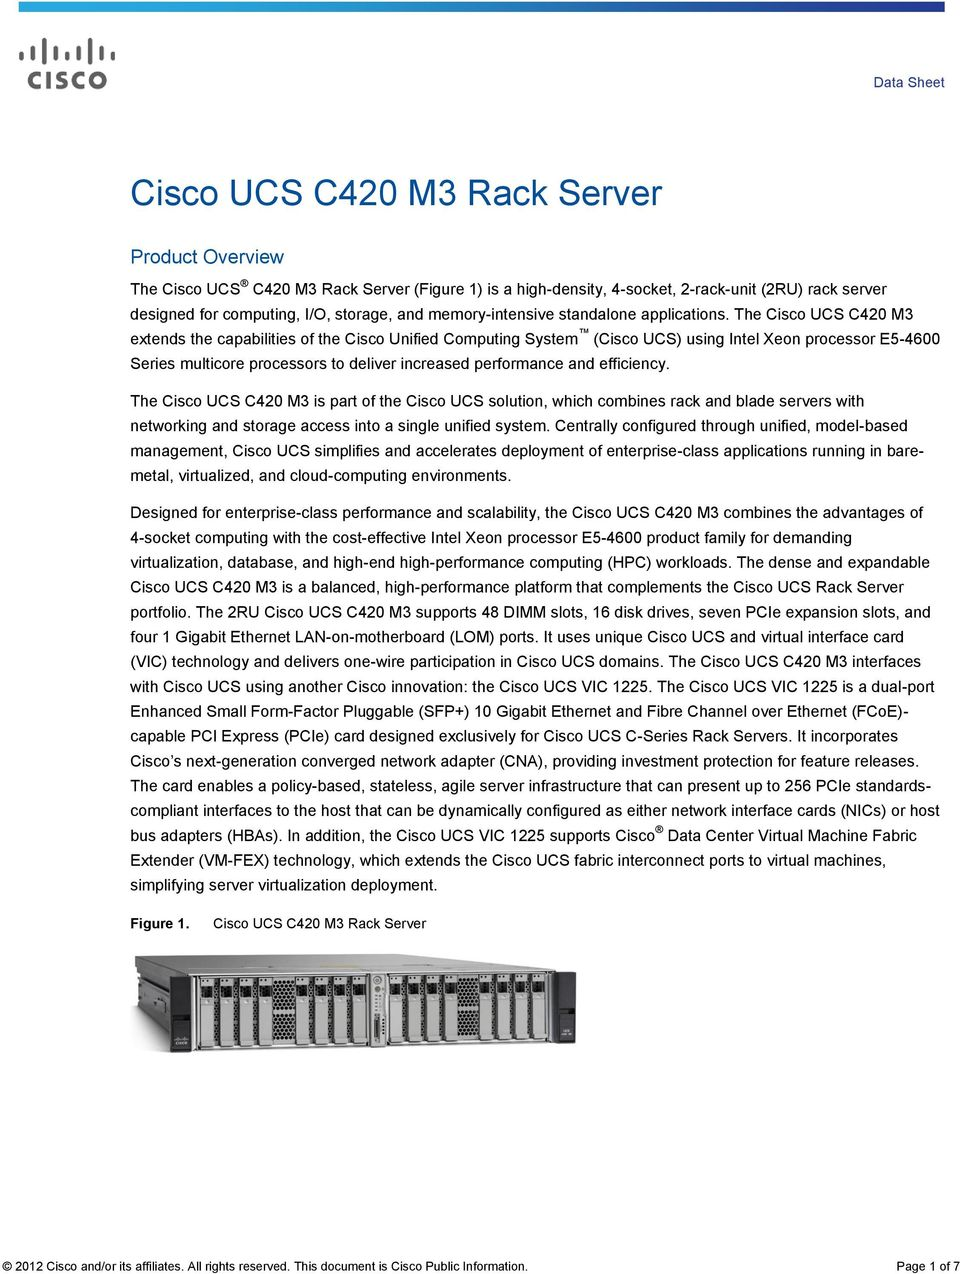 The Cisco UCS C420 M3 extends the capabilities of the Cisco Unified Computing System (Cisco UCS) using Intel Xeon processor E5-4600 Series multicore processors to deliver increased performance and